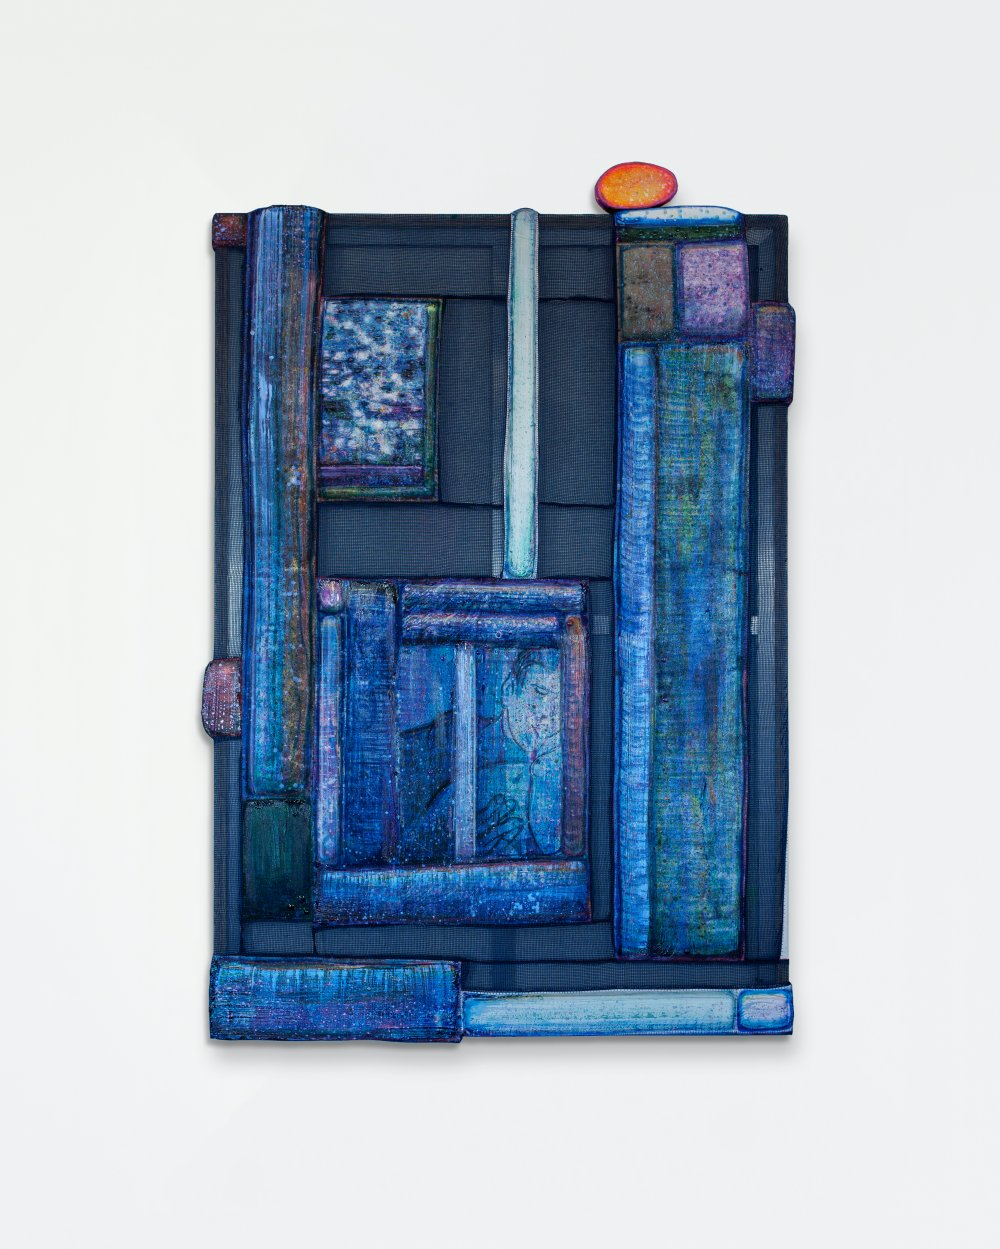 Infinity Intimacy (Second Window Kiss) (Stretched Structure)